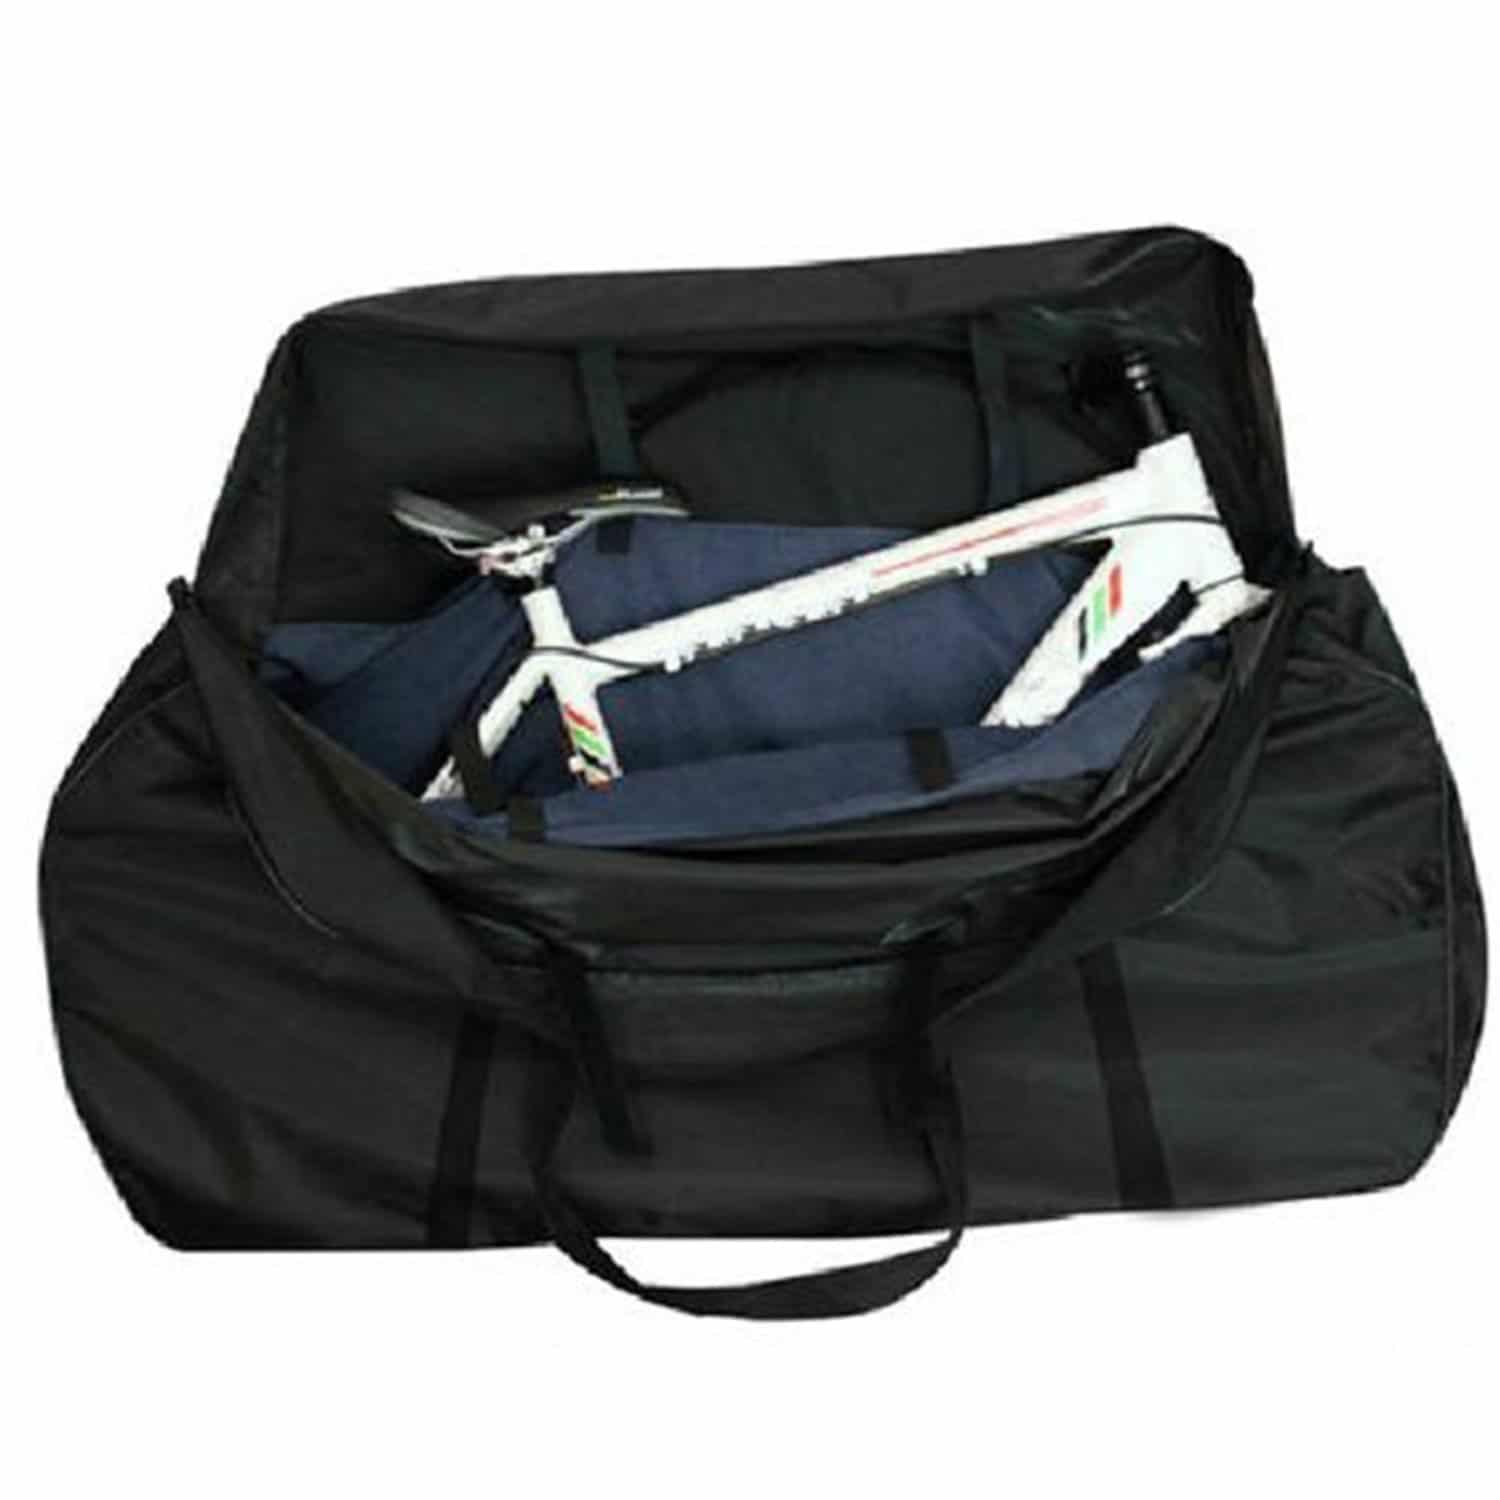 Top 10 Best Bike Travel Cases In 2016 Reviews